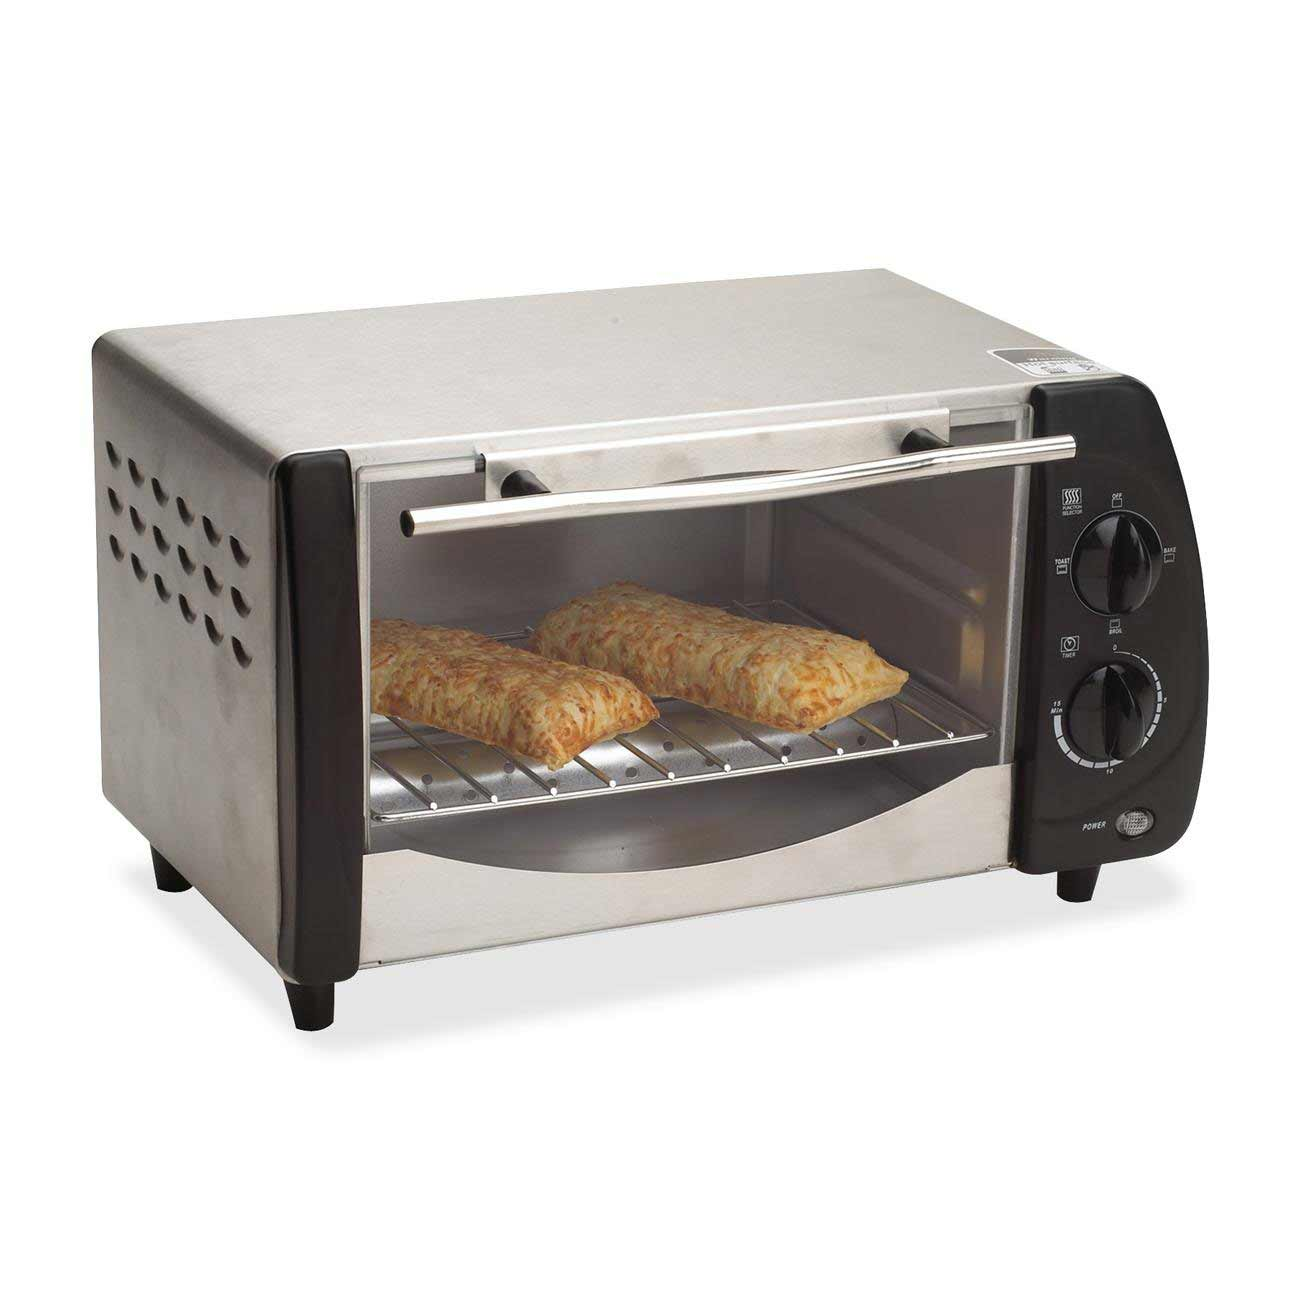 Countertop Oven Toaster : In 1 Cuisinart Convection Oven Toaster And Pizza Oven Tob 135 Apps ...